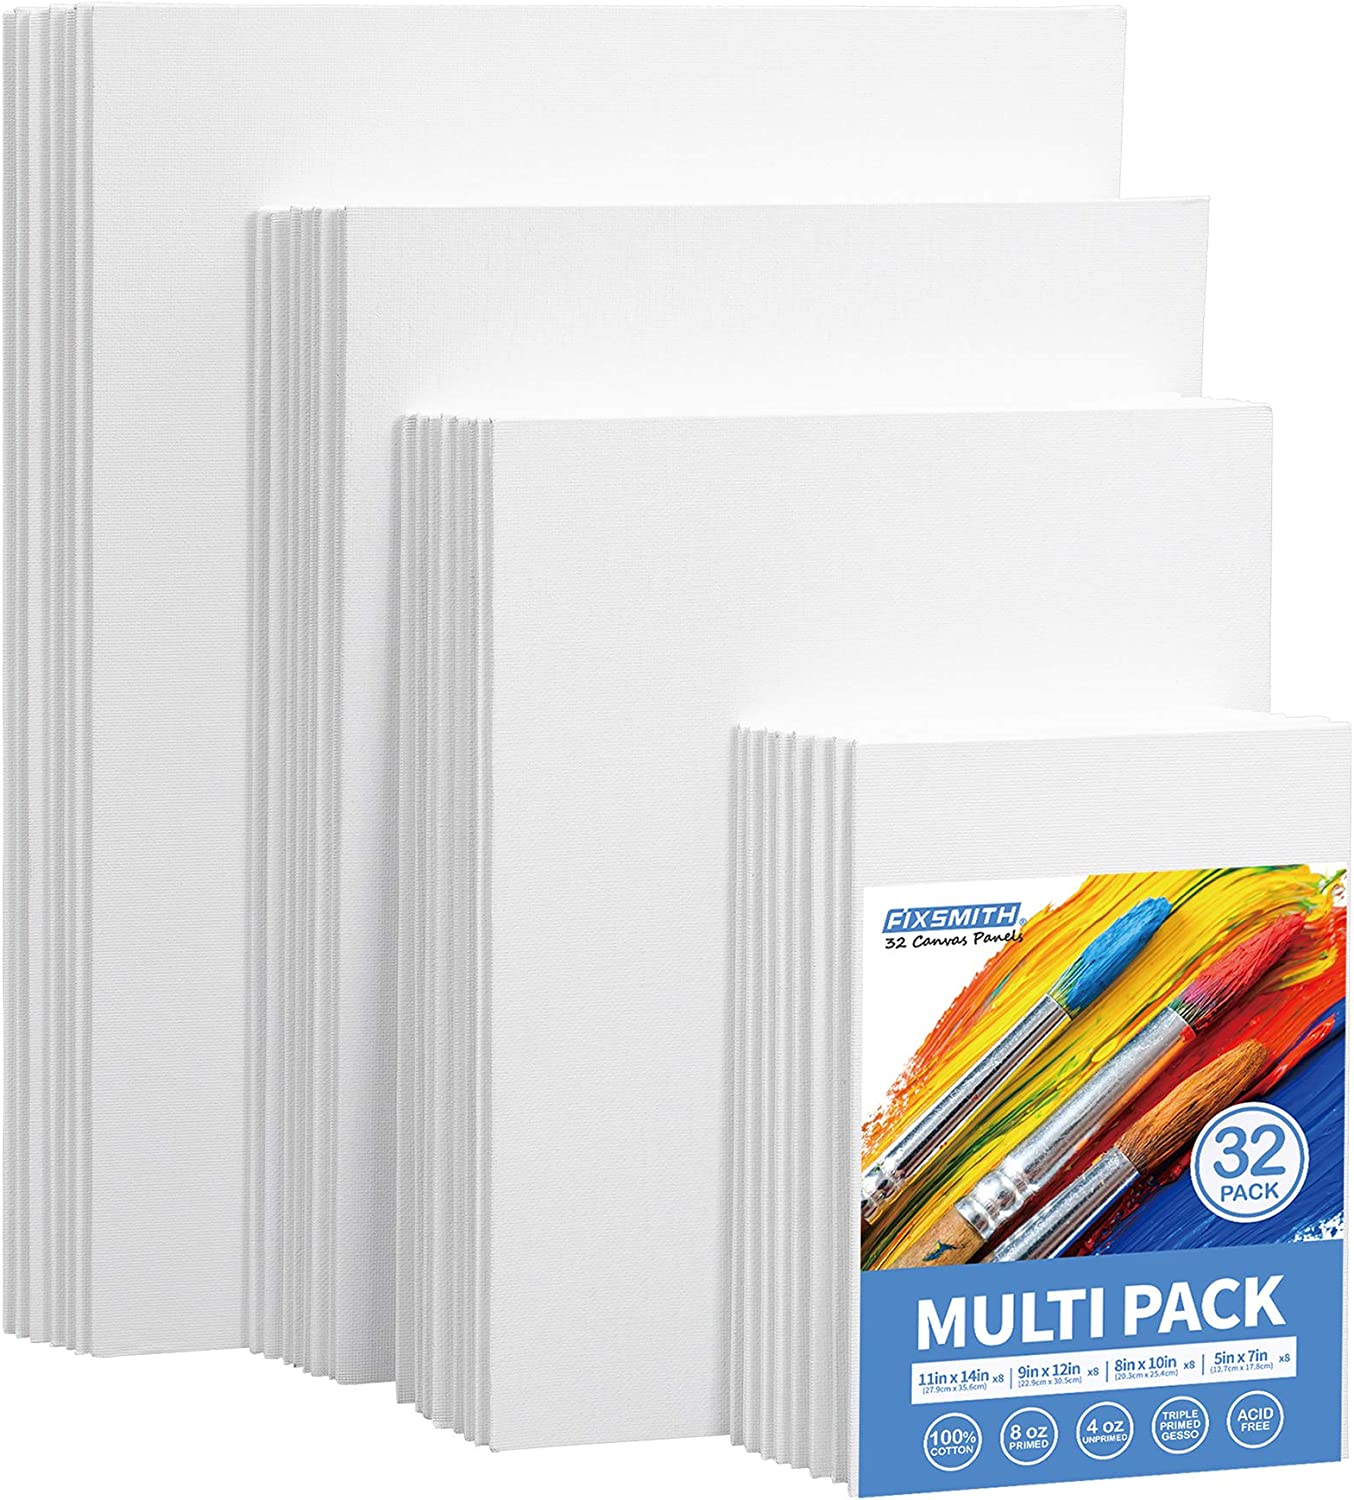 11x14 Inch//9 Pack Artist Painting Canvas Boards Value Pack for Oil /& Acrylic Painting Canvas Panels 100/% Cotton